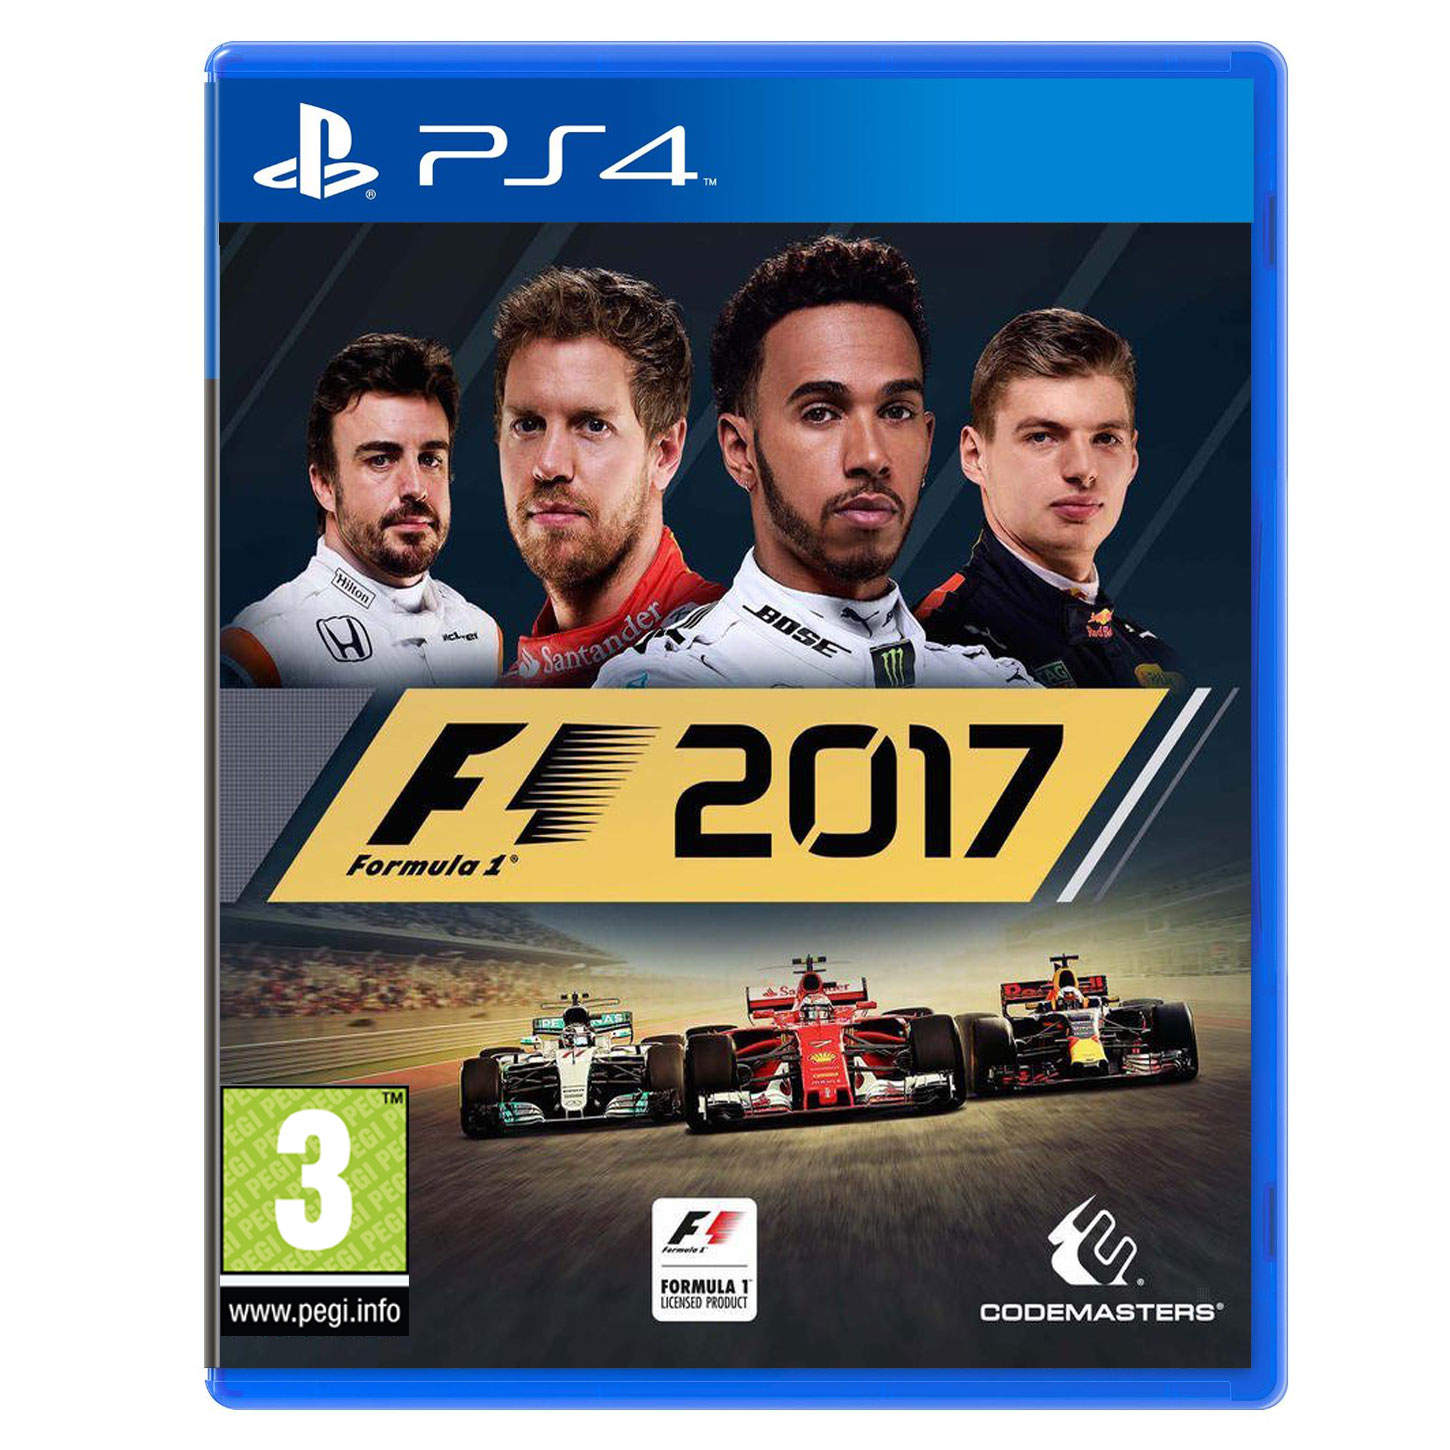 f1 2017 ps4 jeux ps4 codemasters sur. Black Bedroom Furniture Sets. Home Design Ideas